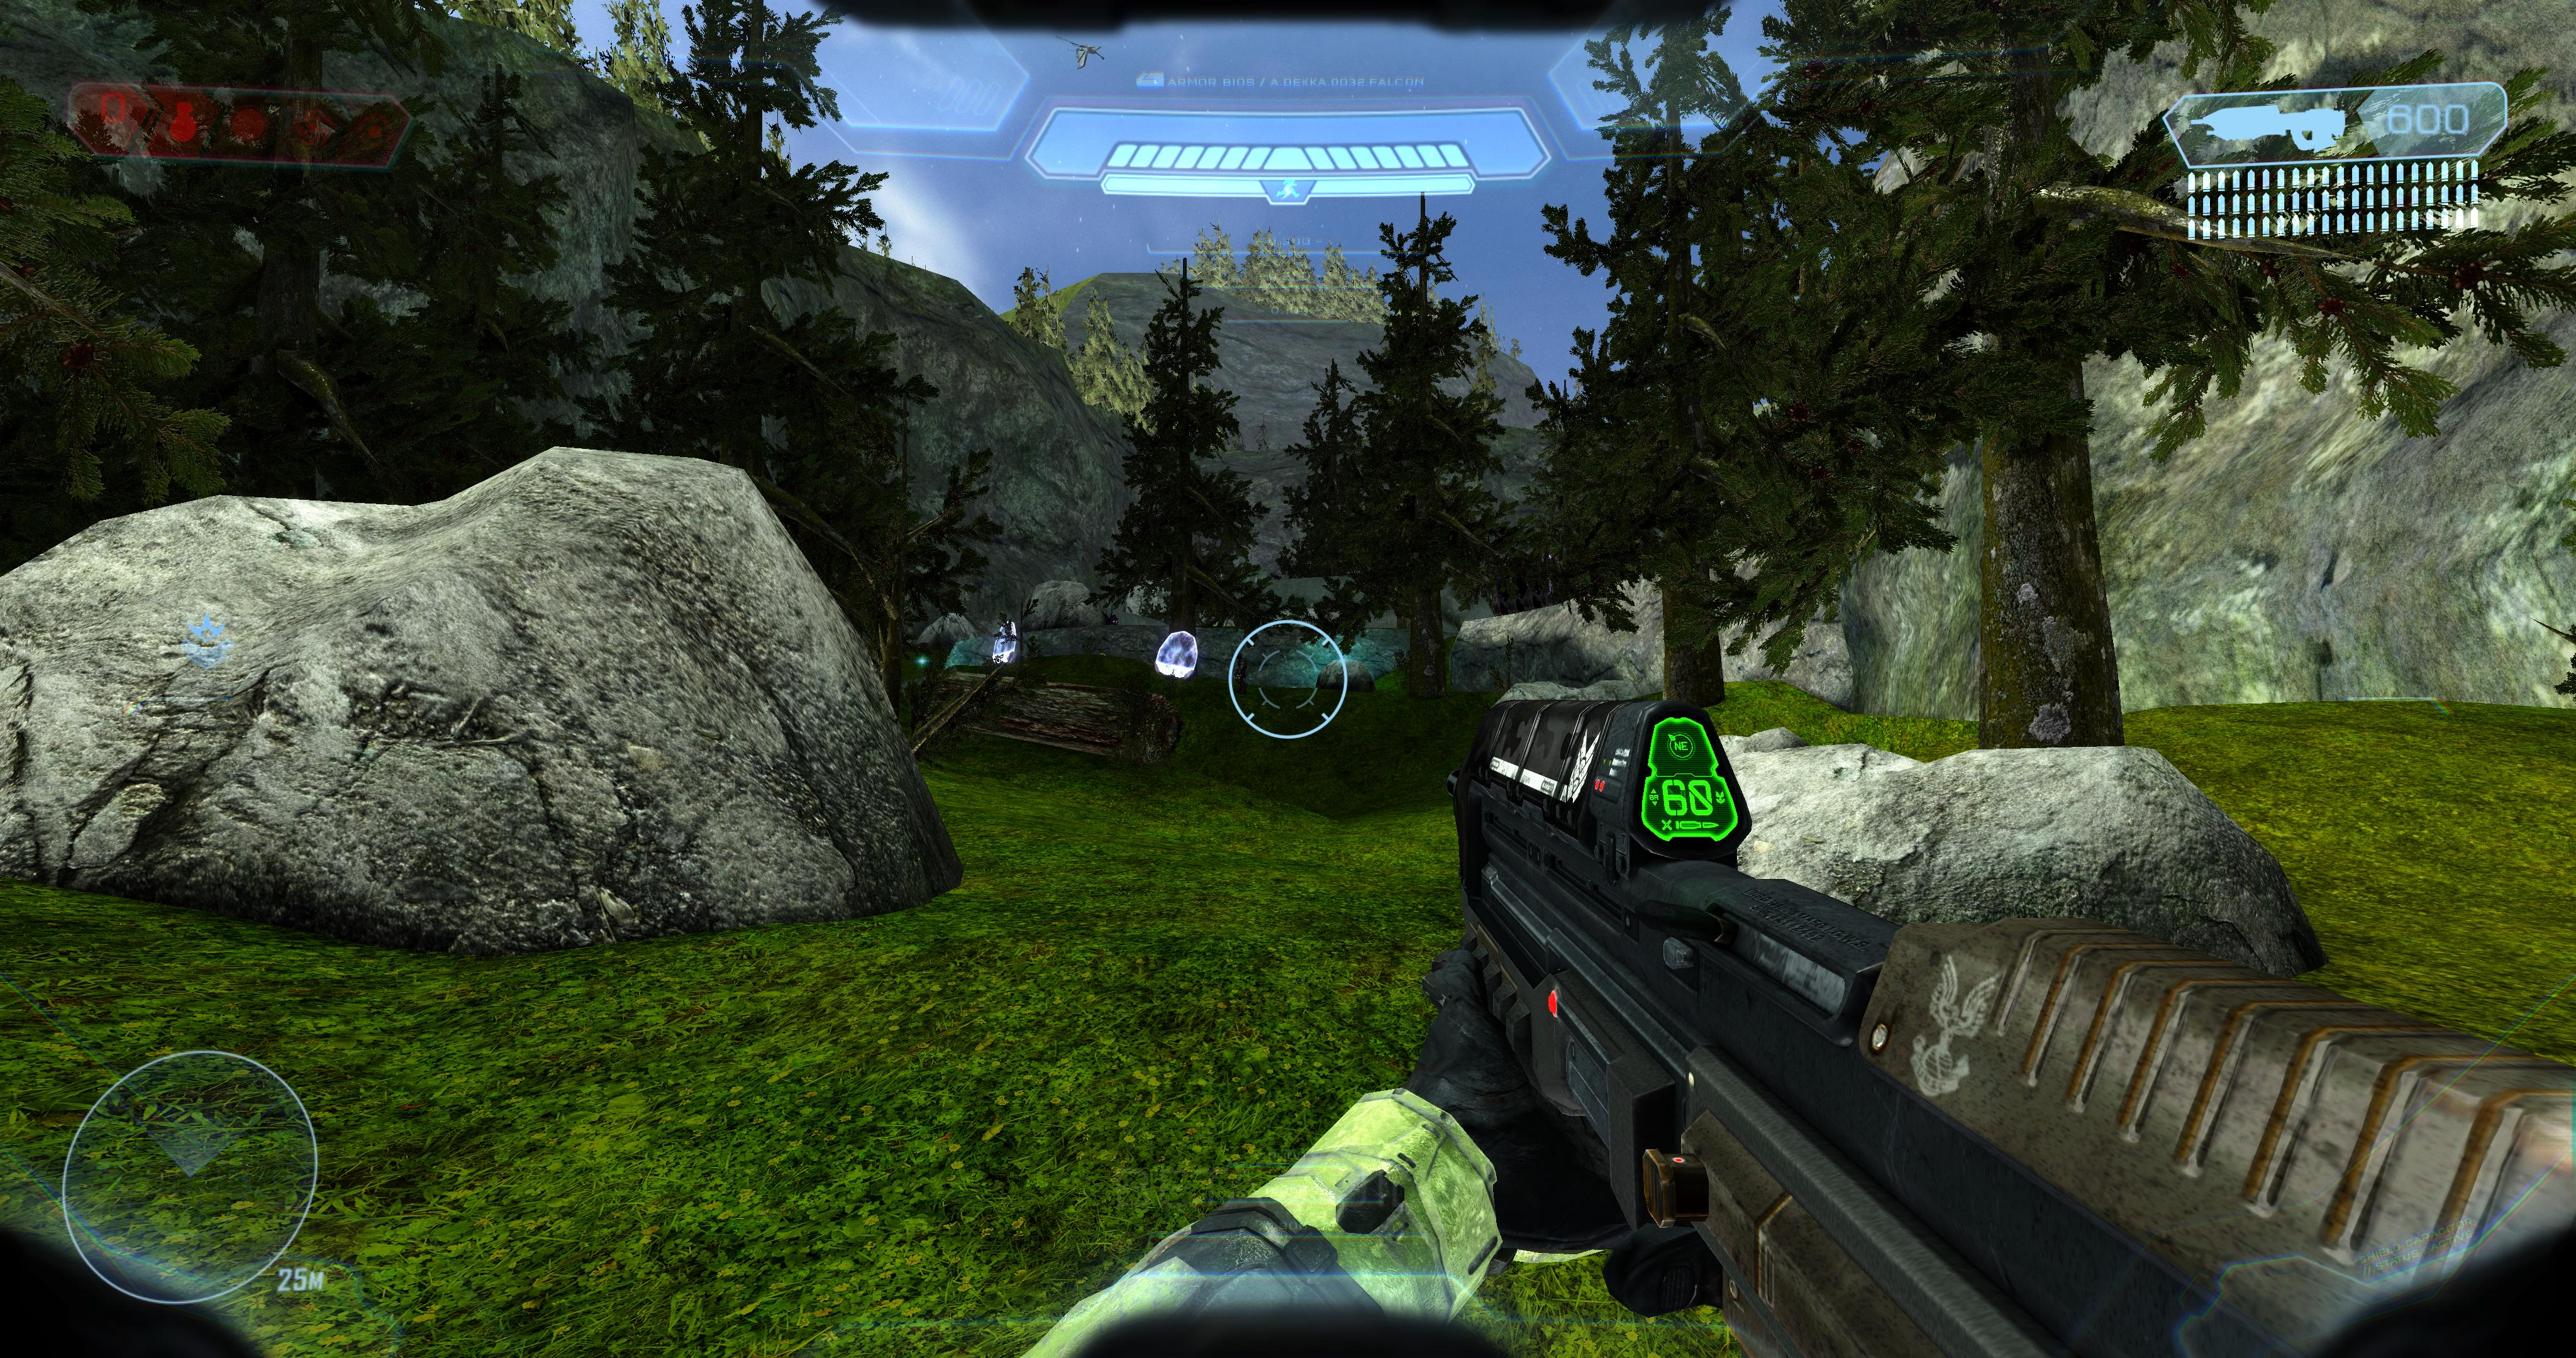 Halo never looked so good